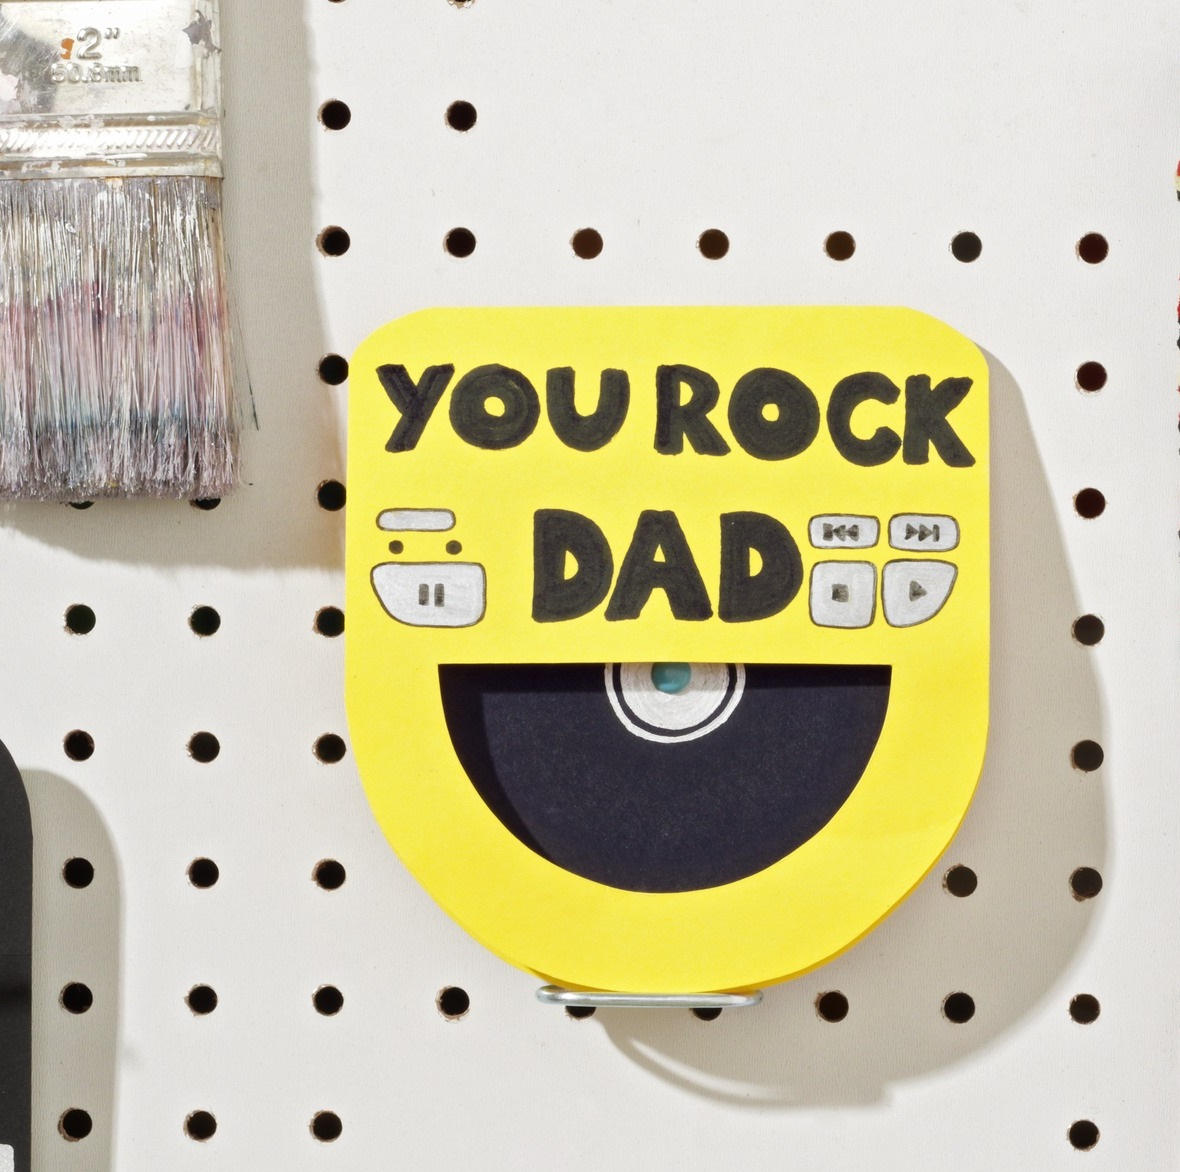 Funny Homemade Birthday Card Ideas Funny Dad Birthday Cards From Daughter Homemade Father S Day